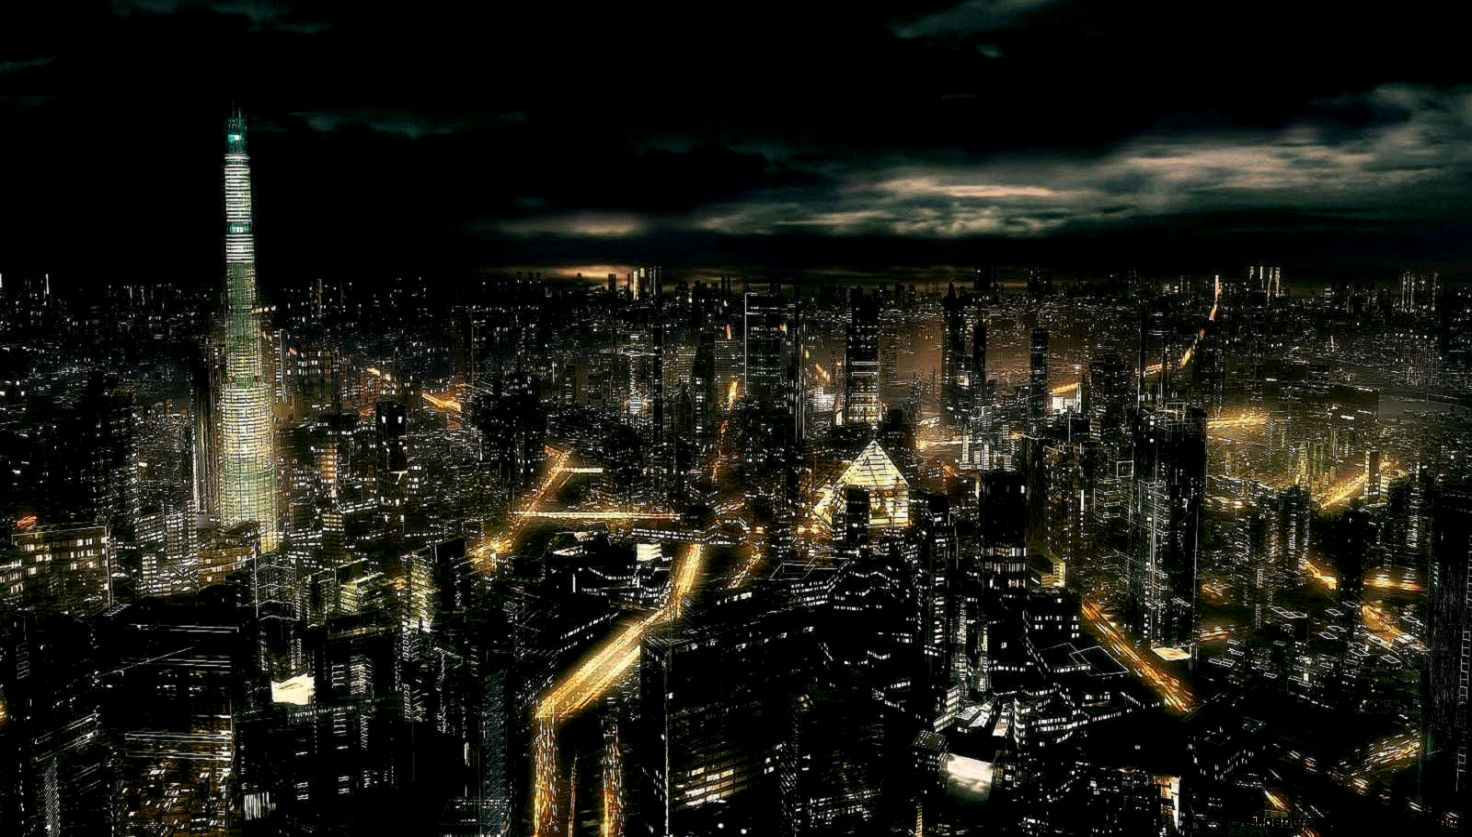 Dark city Hd picture and Hd wallpaper on Pinterest